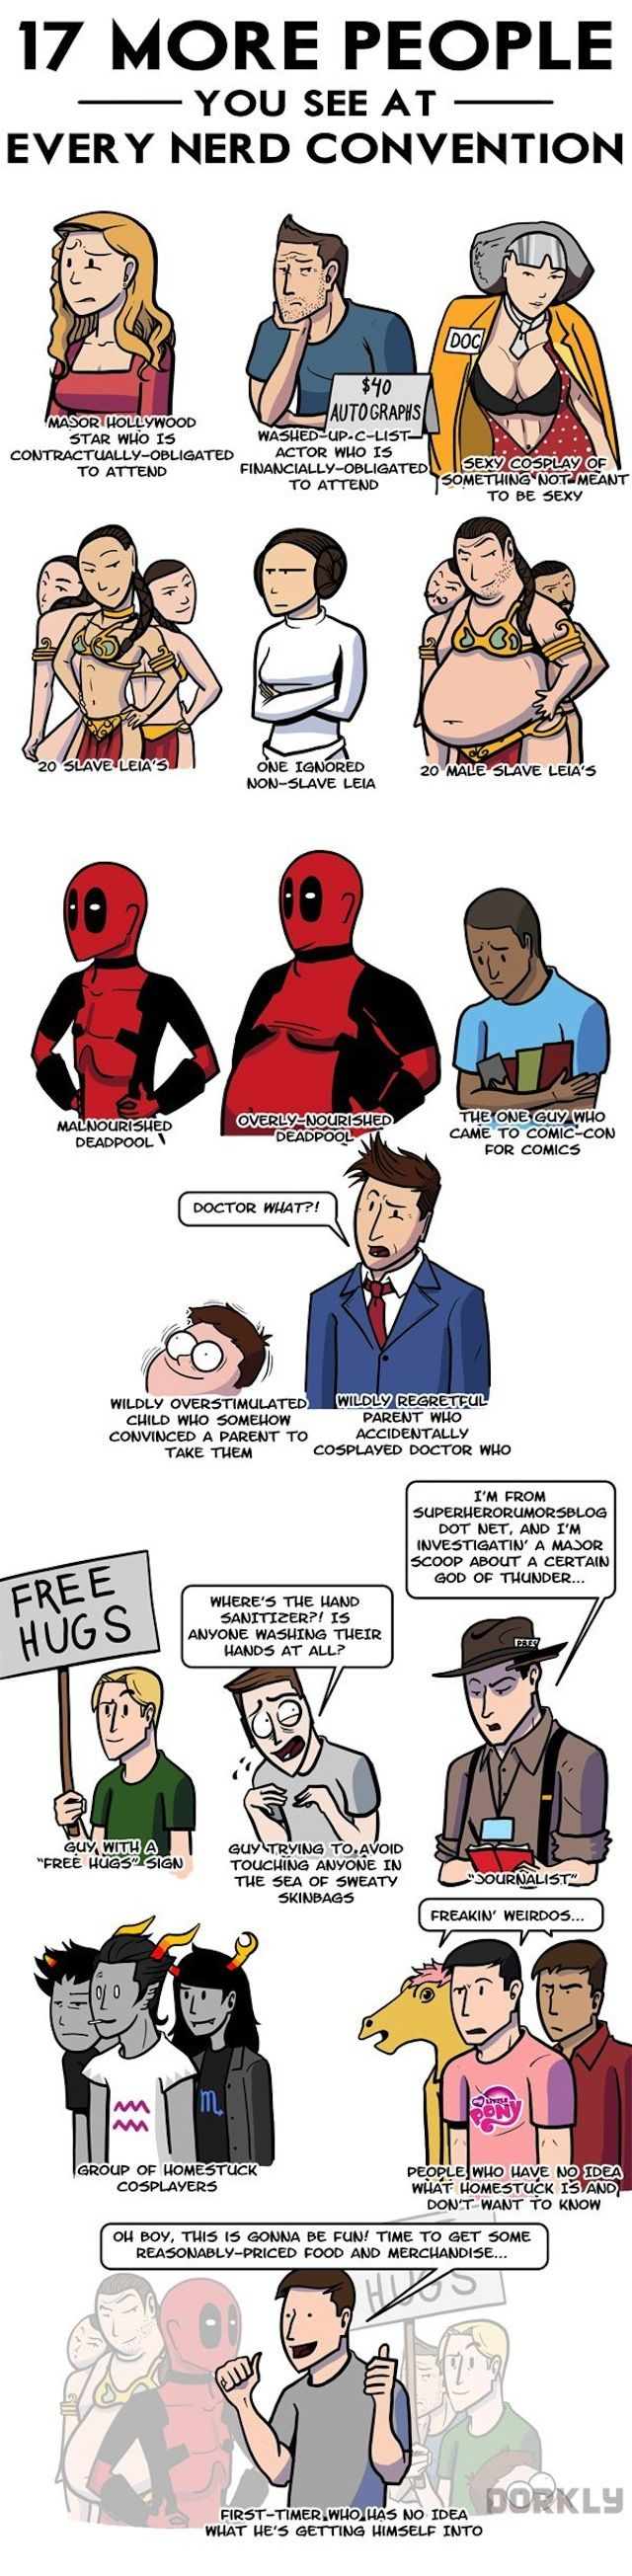 The 17 types of people you see at any nerd convention (infographic)